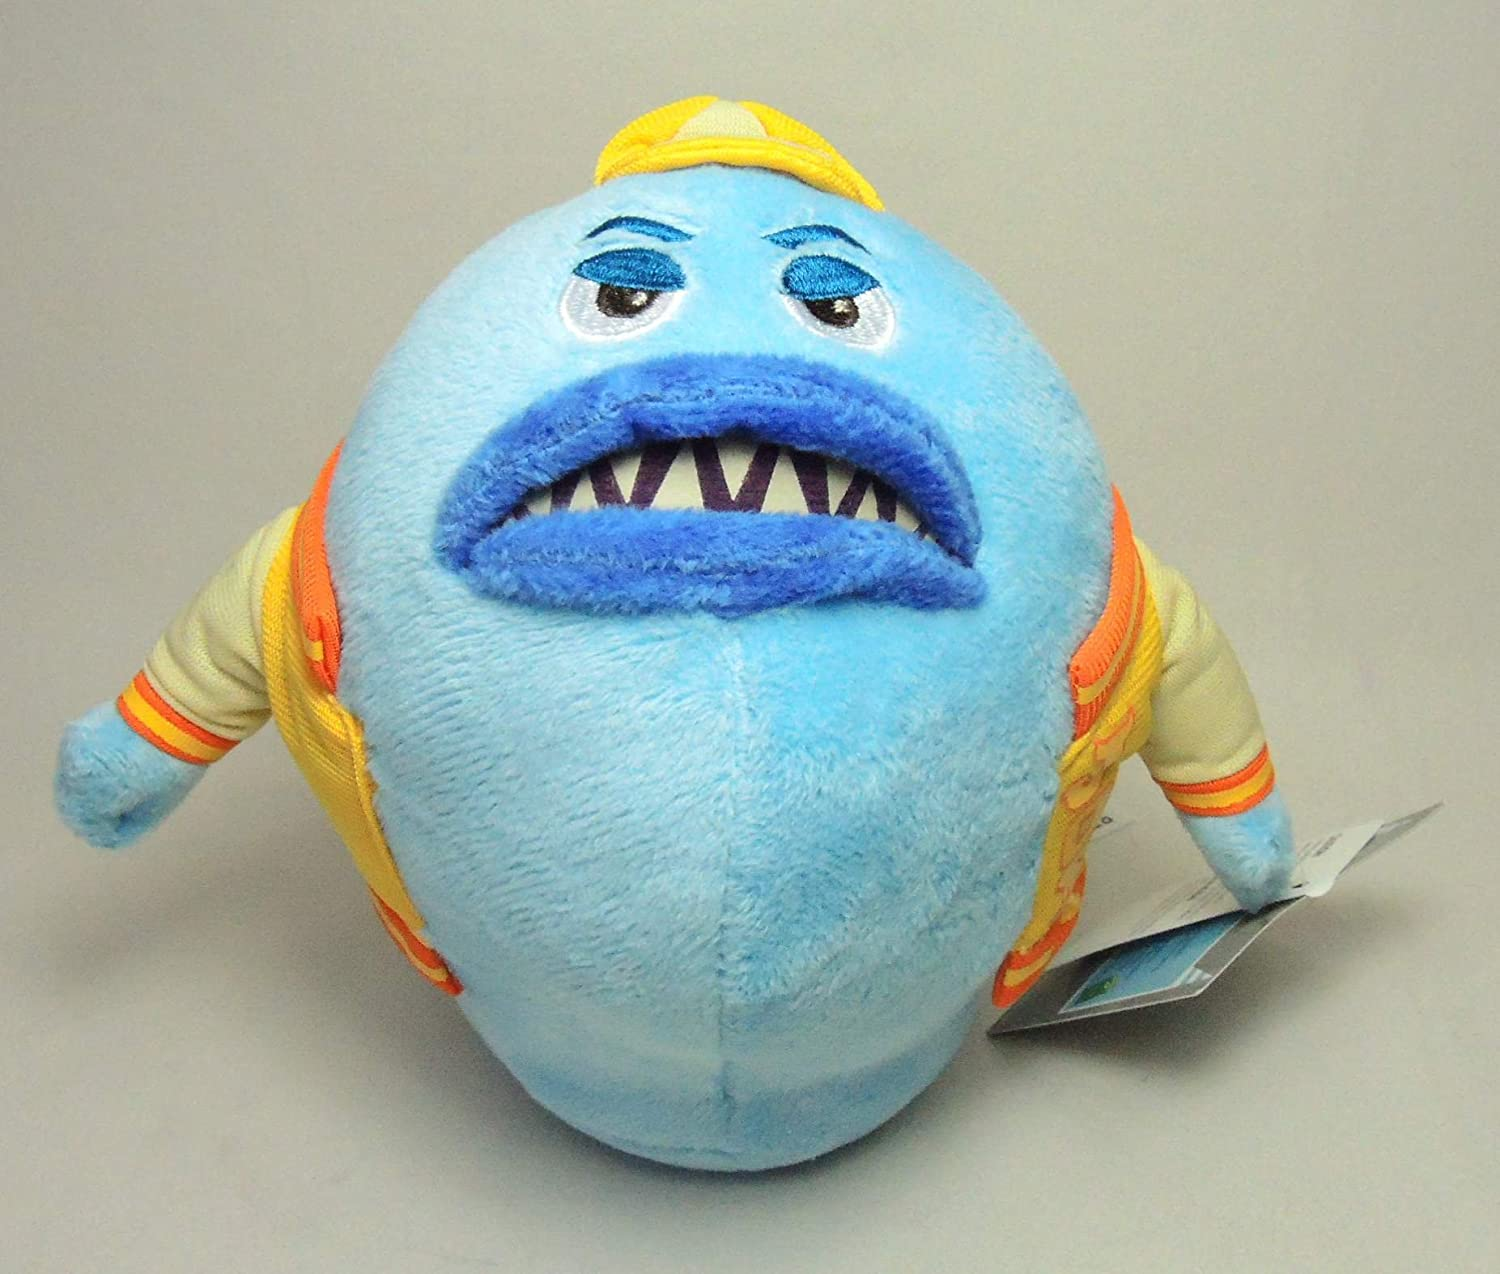 Amazon.com: Disney Baboso Mini Bean Bag Plush - Monsters University - 6 1/2: Toys & Games